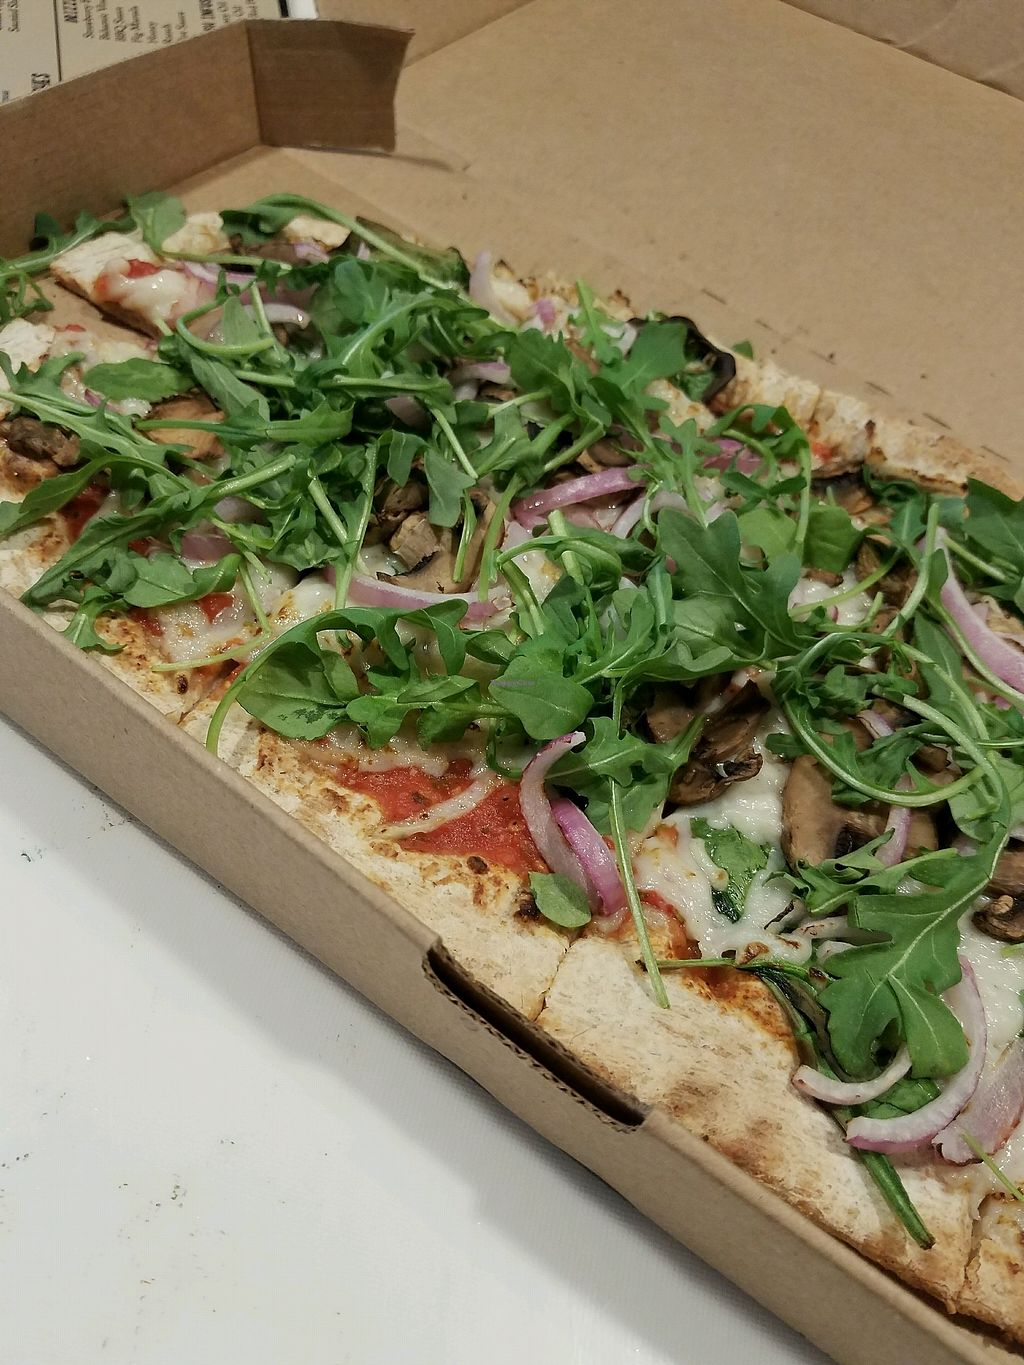 """Photo of Zablong  by <a href=""""/members/profile/trisstessa"""">trisstessa</a> <br/>Multigrain dough with mushrooms, red onion, spinach, arugula, and vegan cheese <br/> April 3, 2018  - <a href='/contact/abuse/image/111456/380383'>Report</a>"""